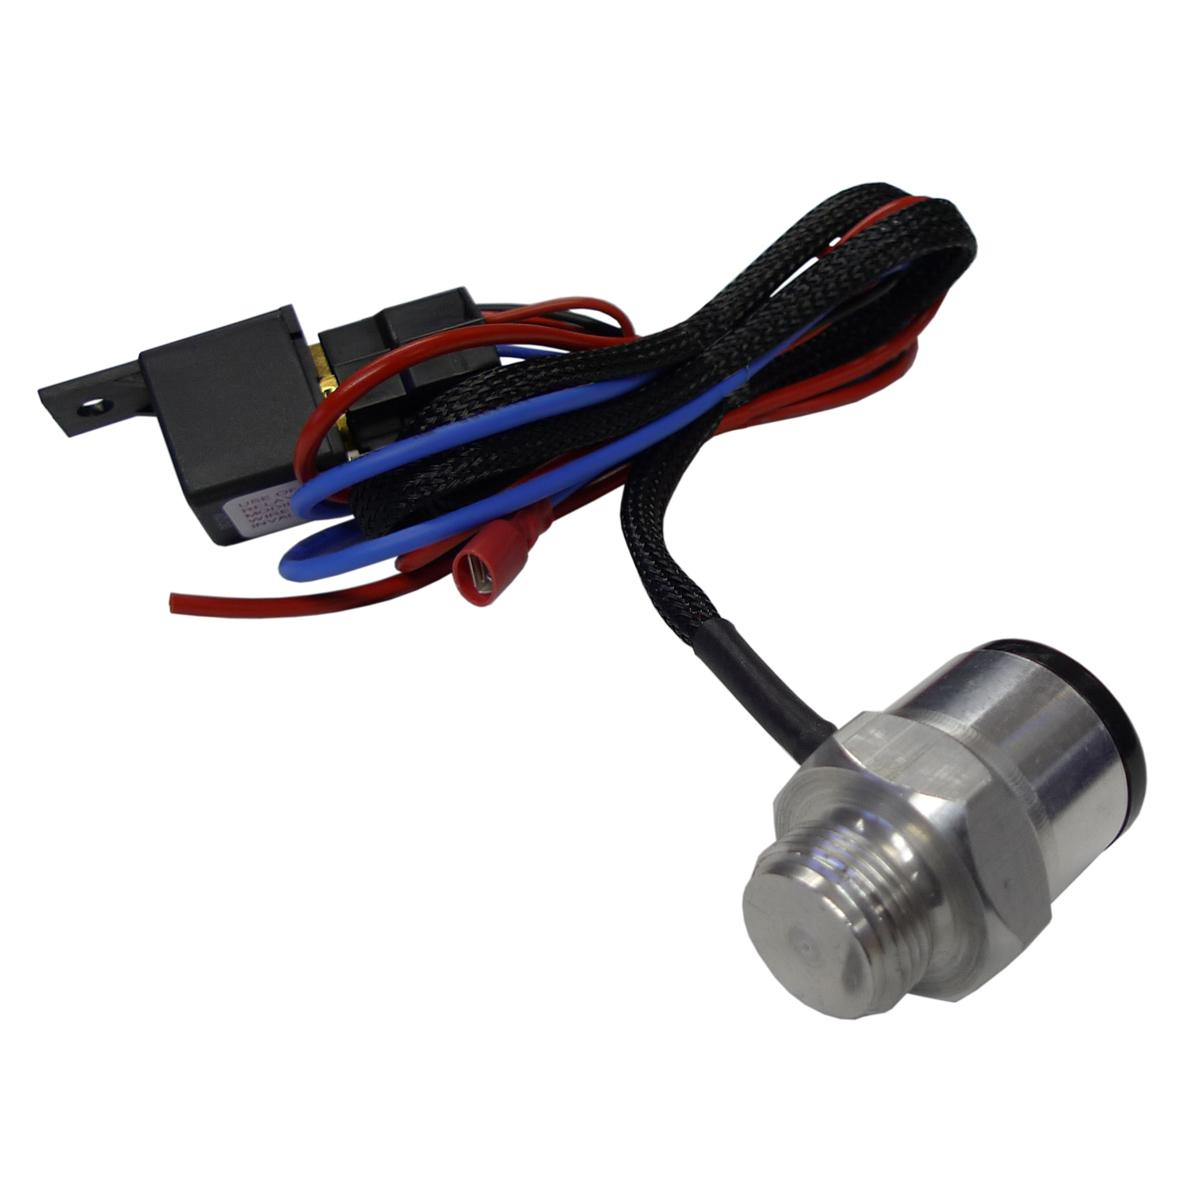 Electronic Fan Controller with M14 x 1.5 Thread from Merlin Motorsport #691D18